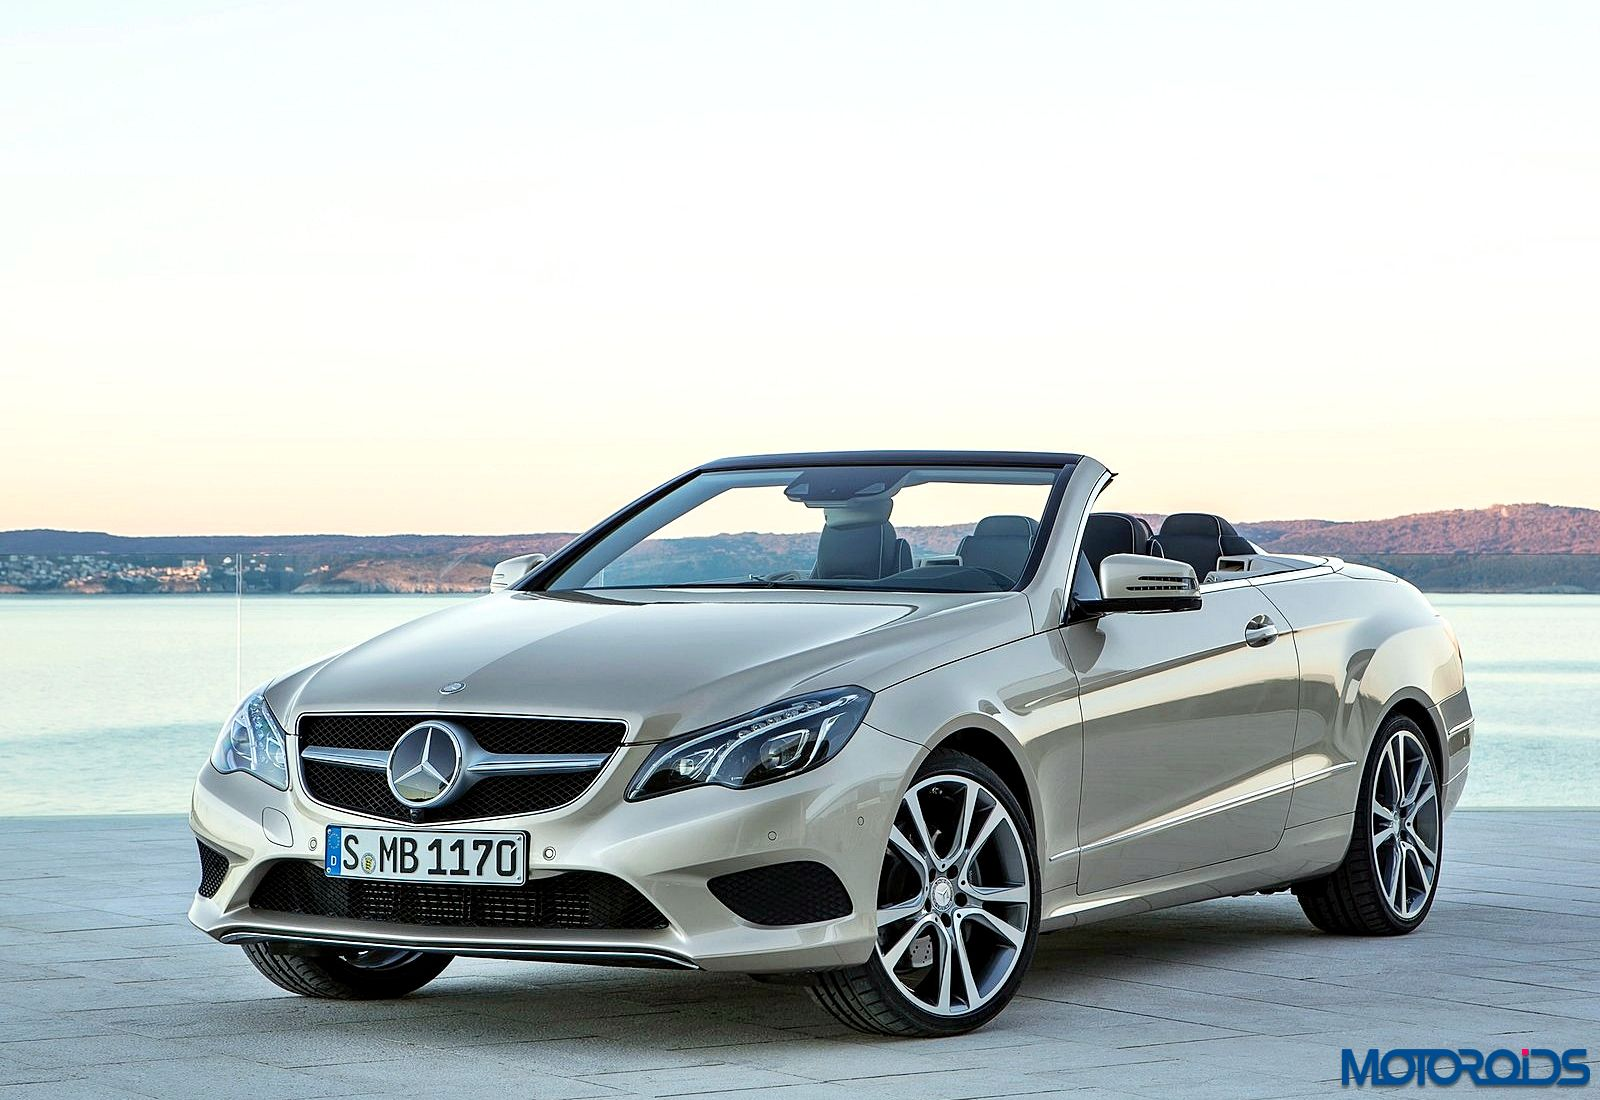 mercedes e class cabriolet india launch live price tech specs images and features motoroids. Black Bedroom Furniture Sets. Home Design Ideas